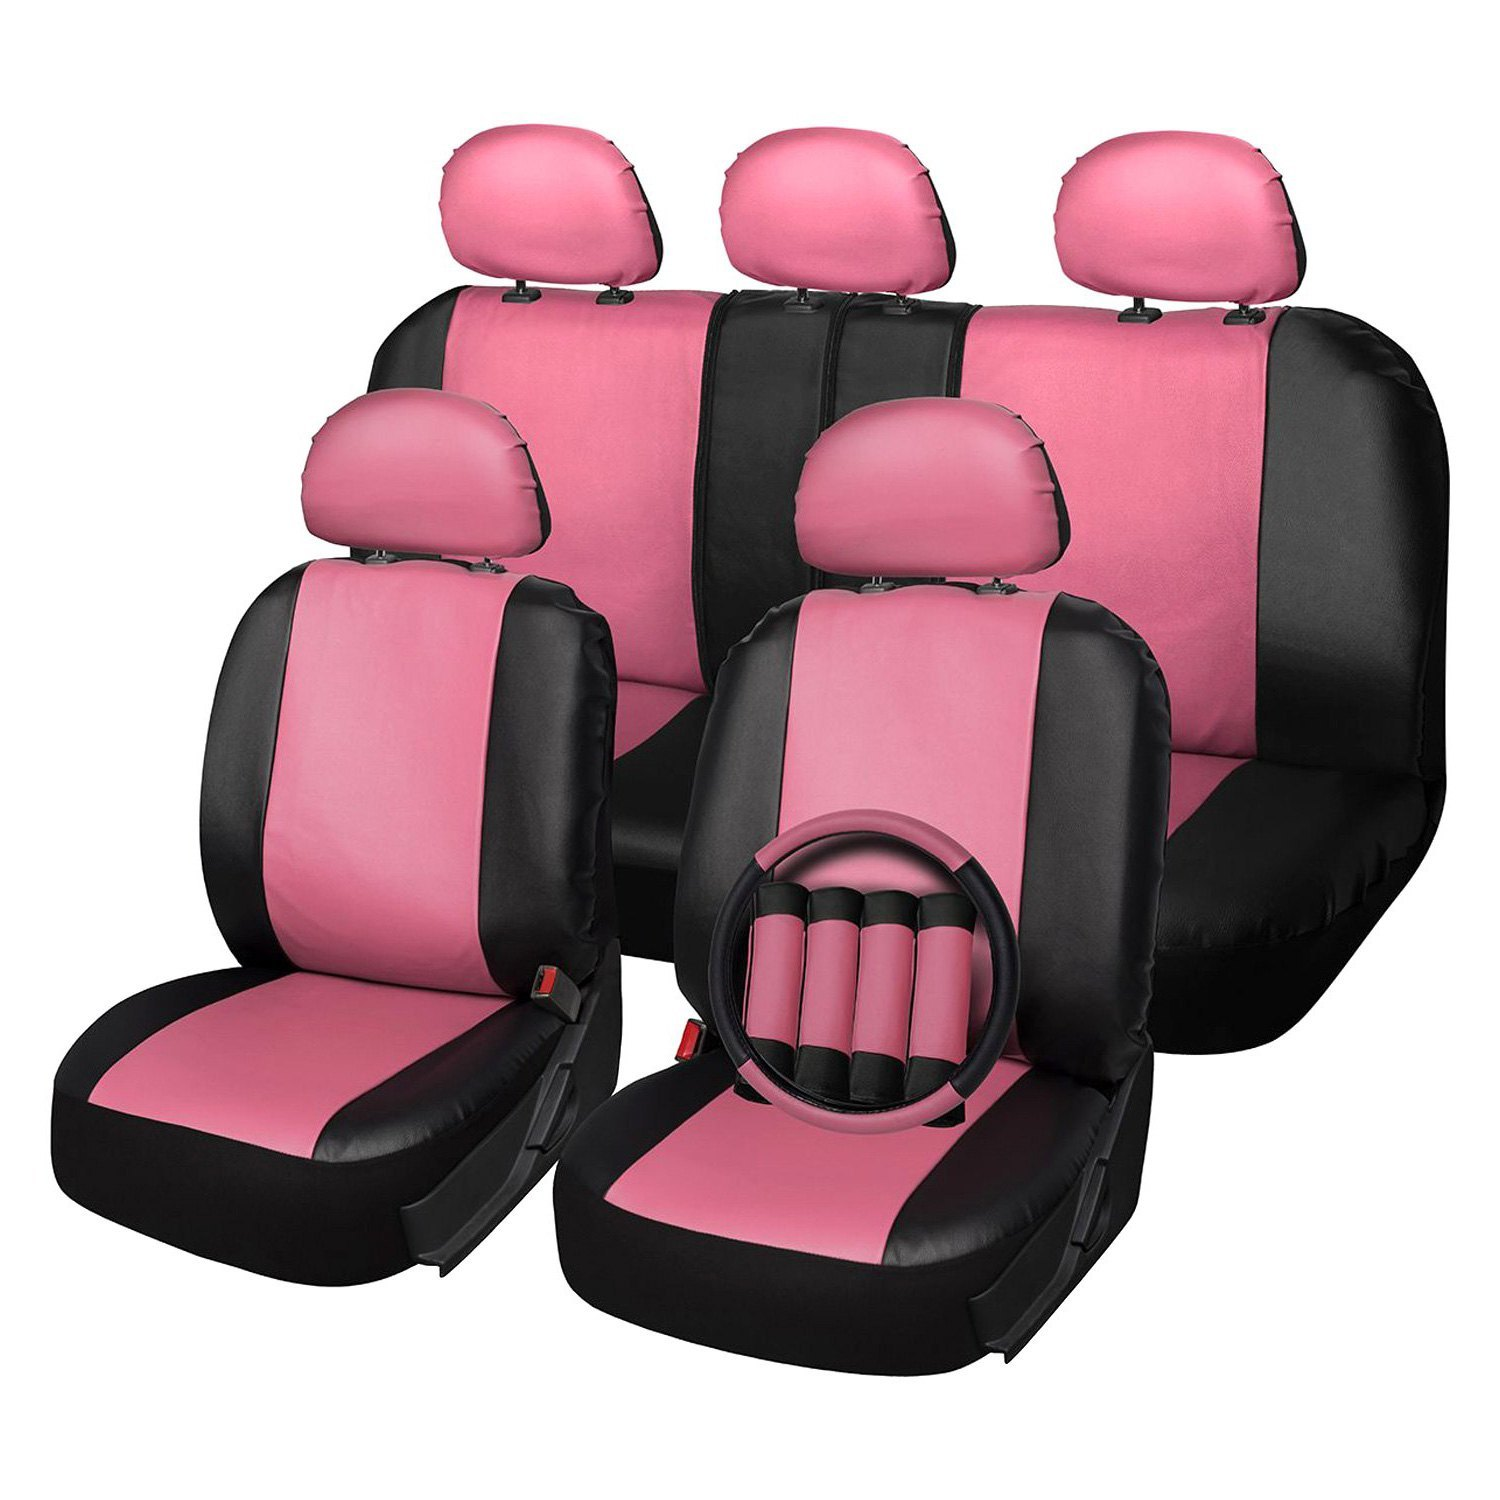 Oxgord Scpu S2a Pk Faux Leather 1st 2nd Row Pink Black Seat